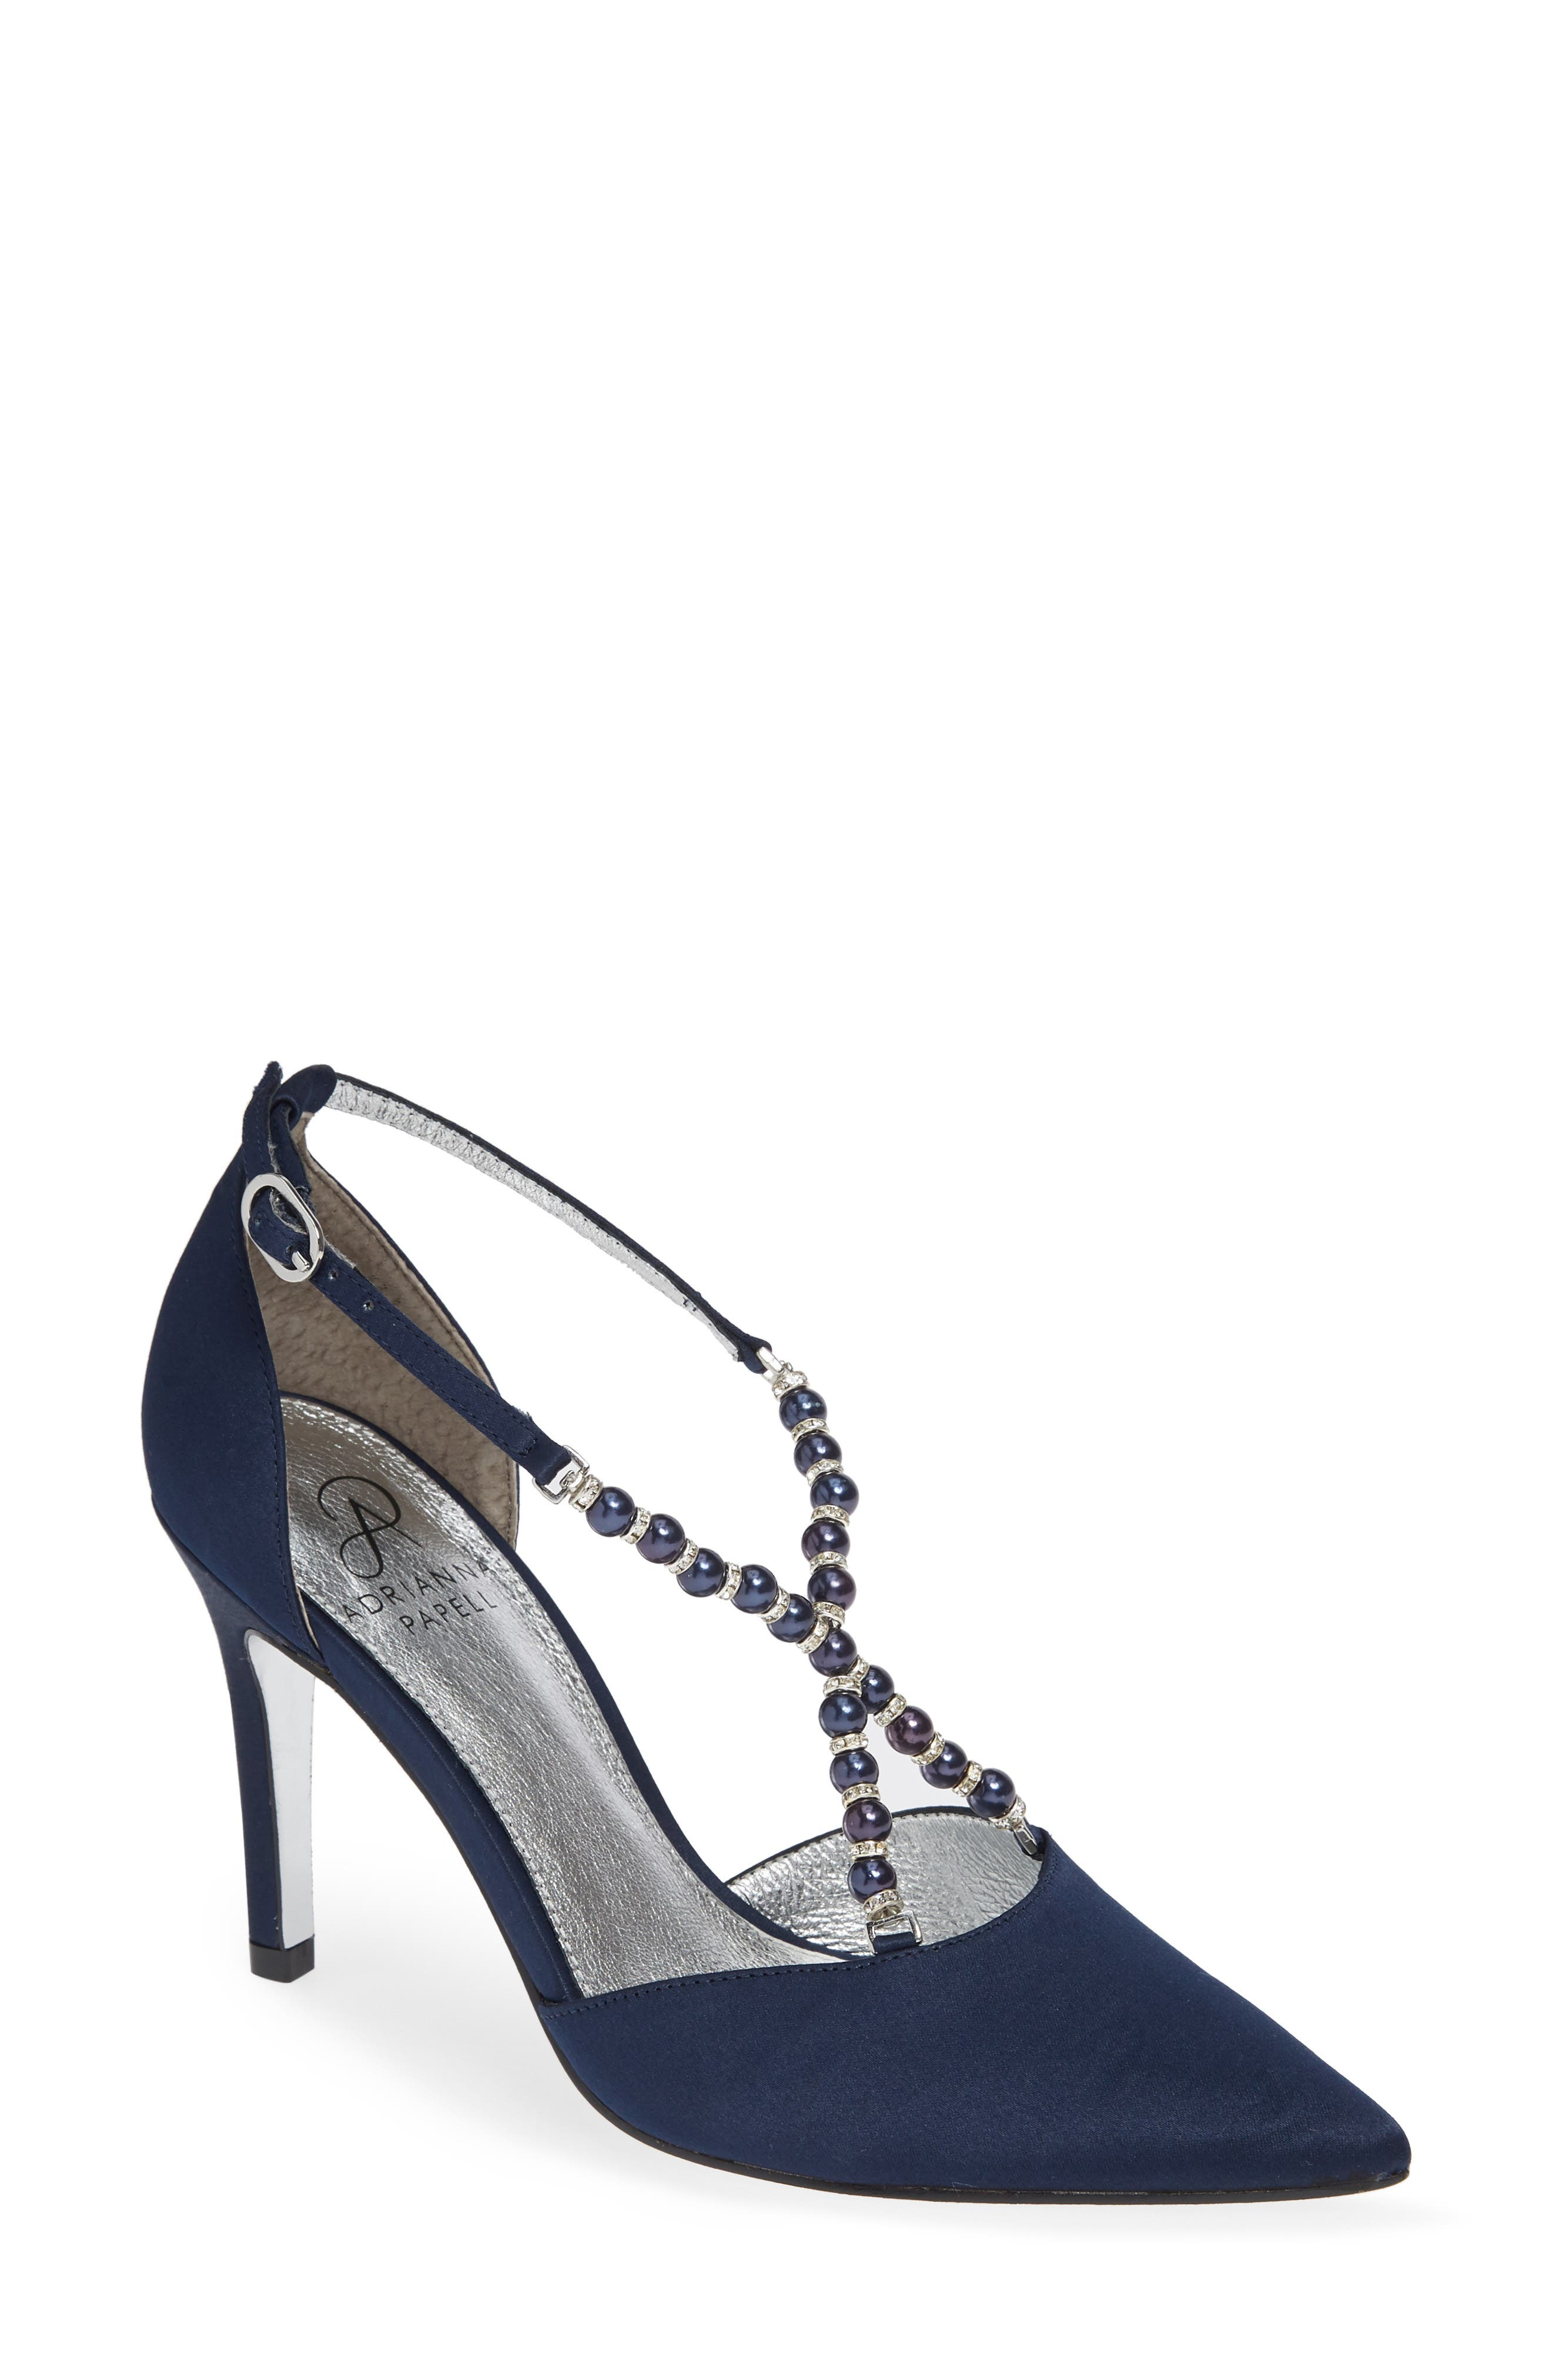 ADRIANNA PAPELL Pointed-Toe Pumps With Beaded Straps in Navy